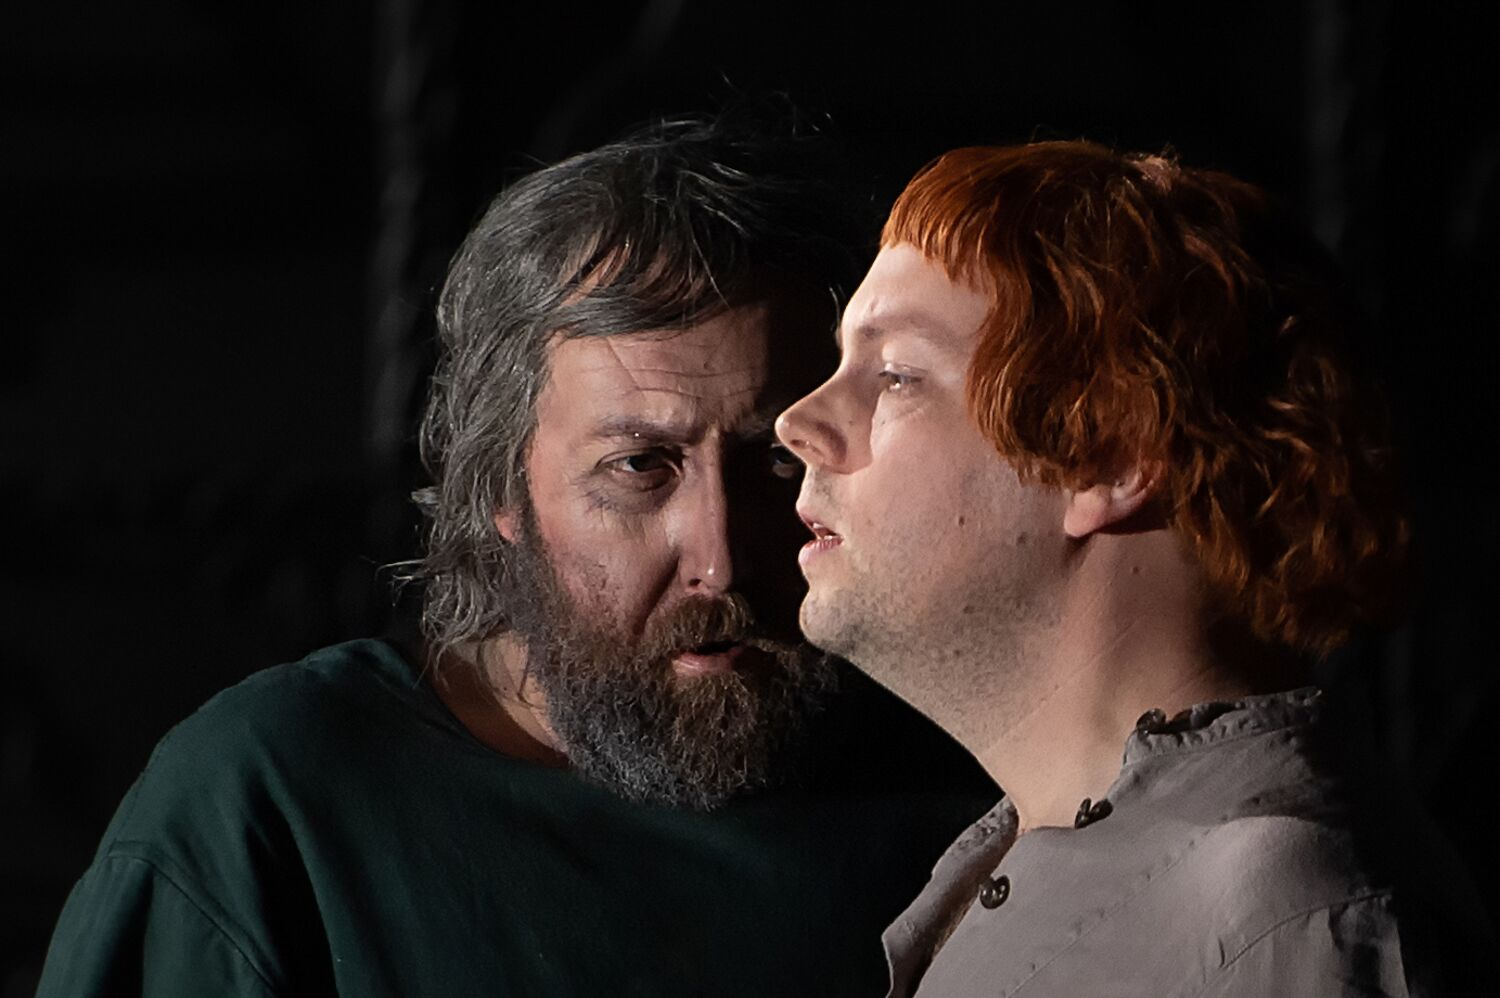 Matthew Rose and David Butt Phillip in Royal Opera Boris Godunov